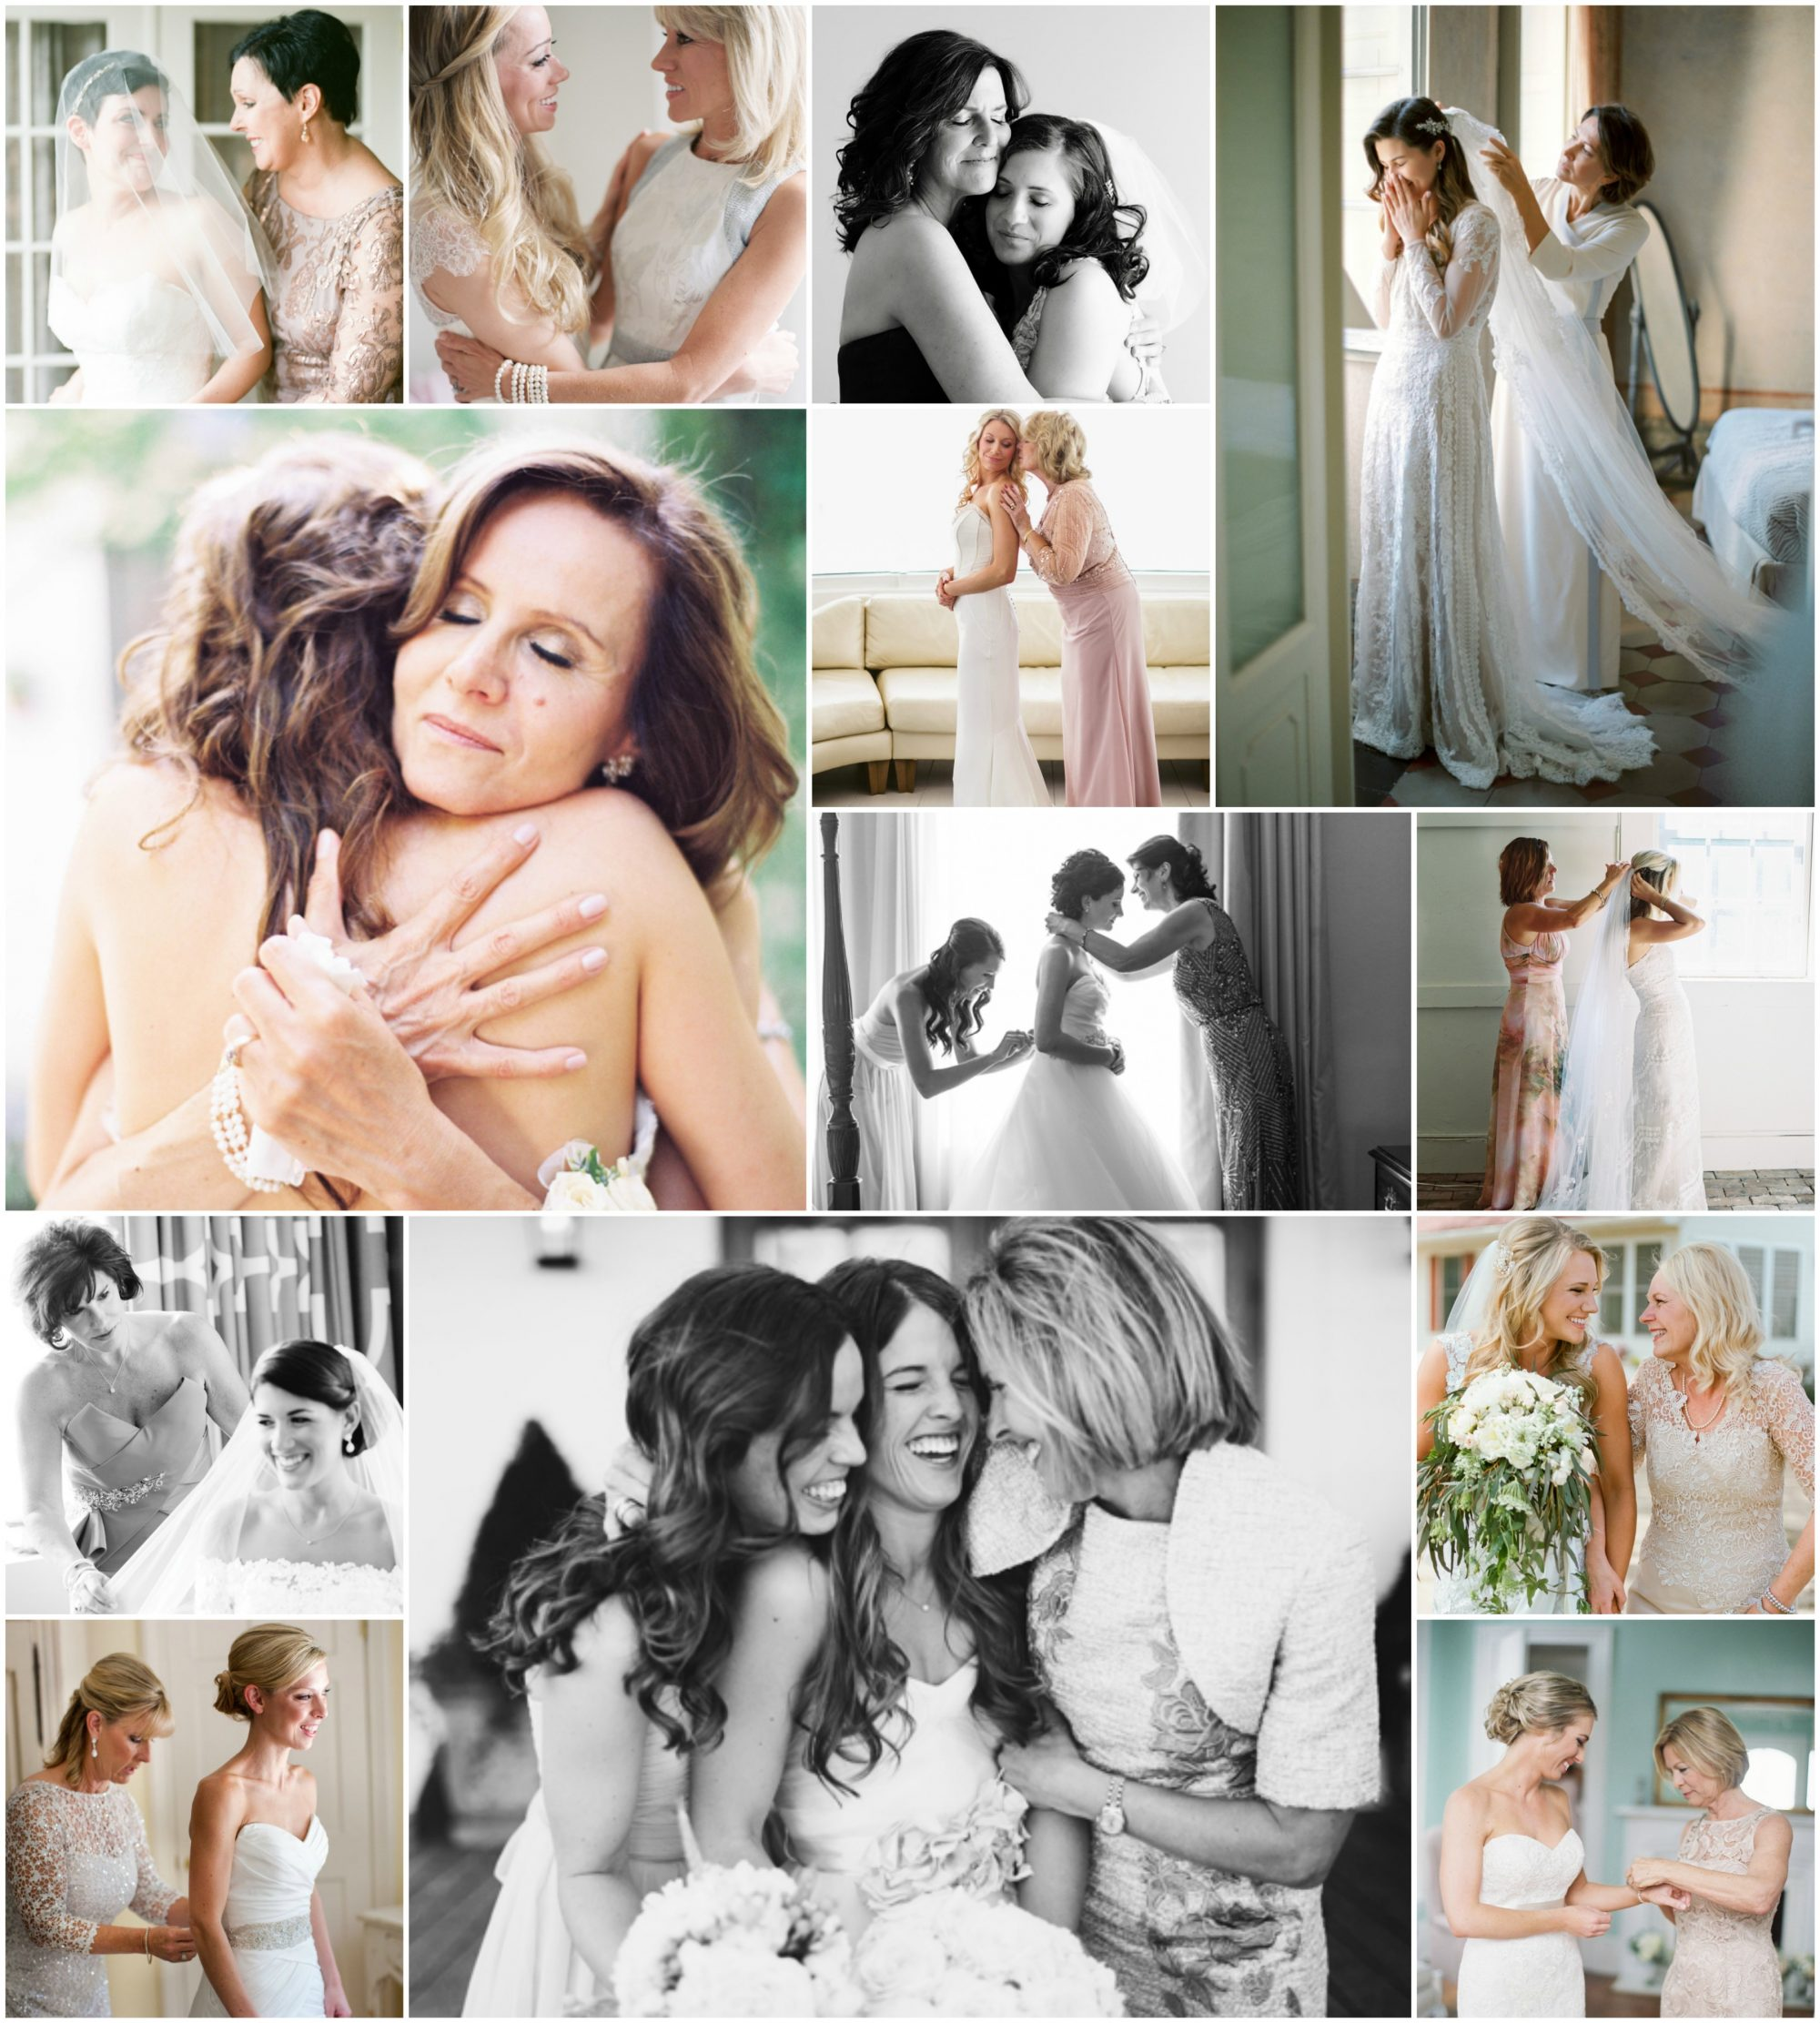 The Most Beautiful Mother of the Bride Moments Ever